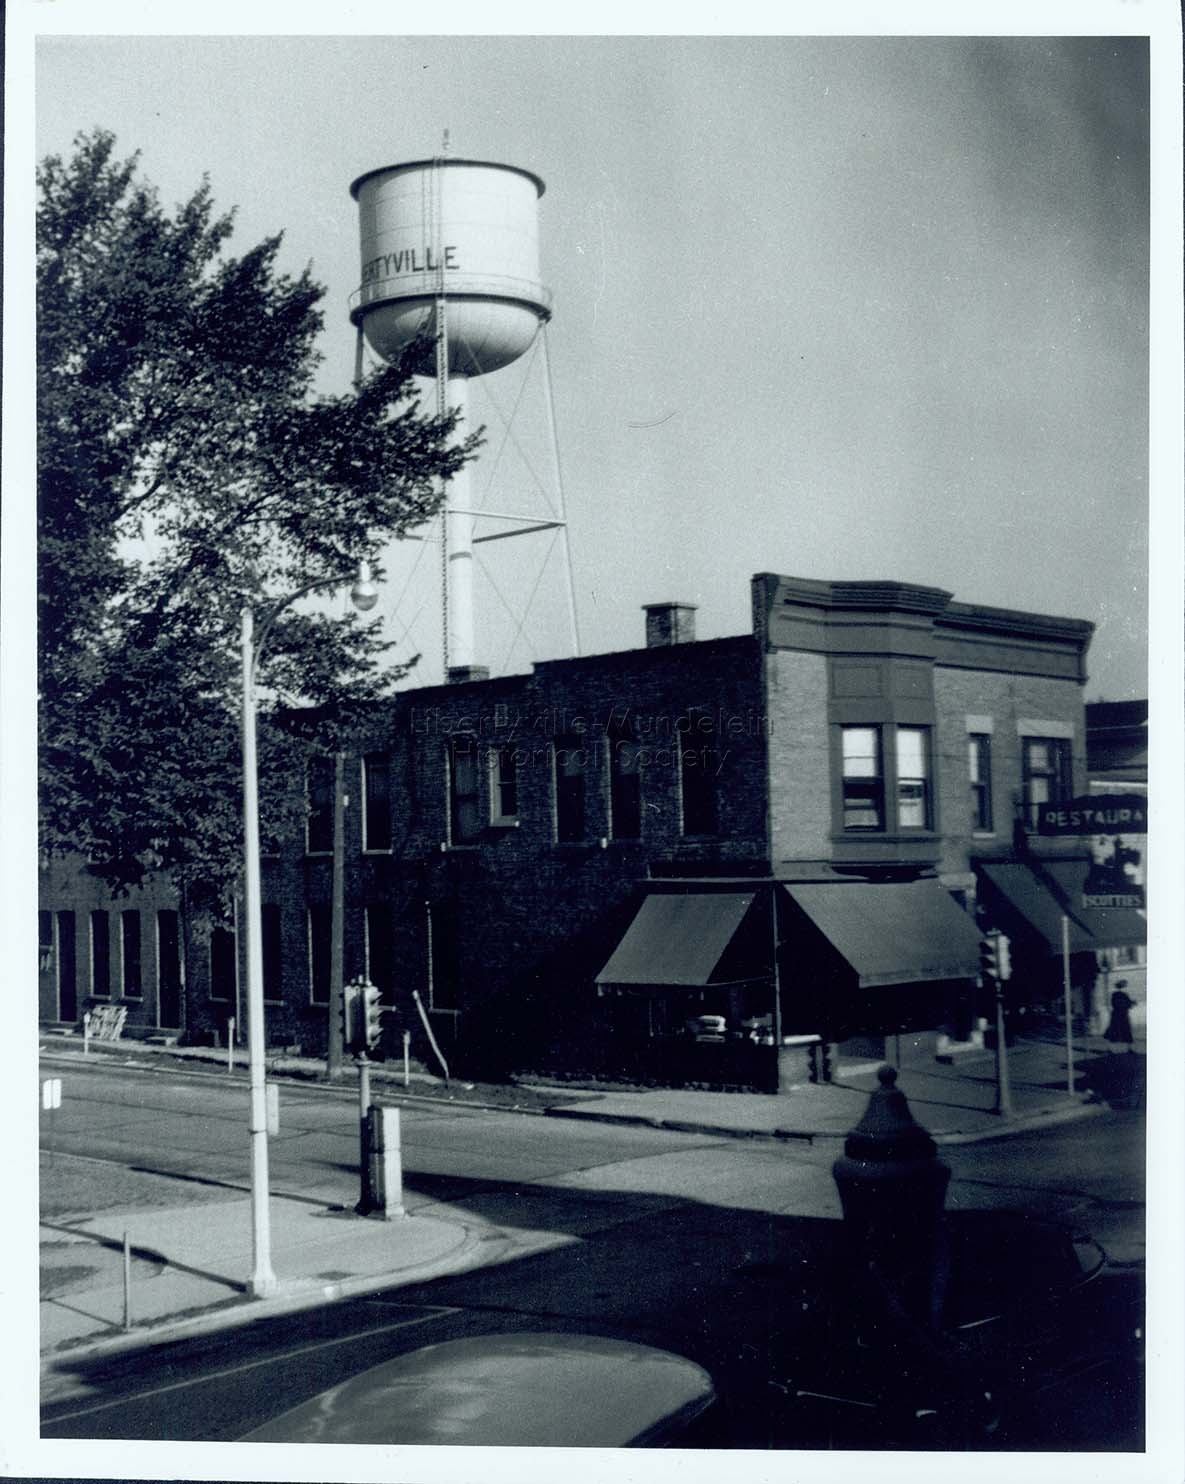 Titus Brothers and Scottie's Restaurant with old village water tower in background, 1948